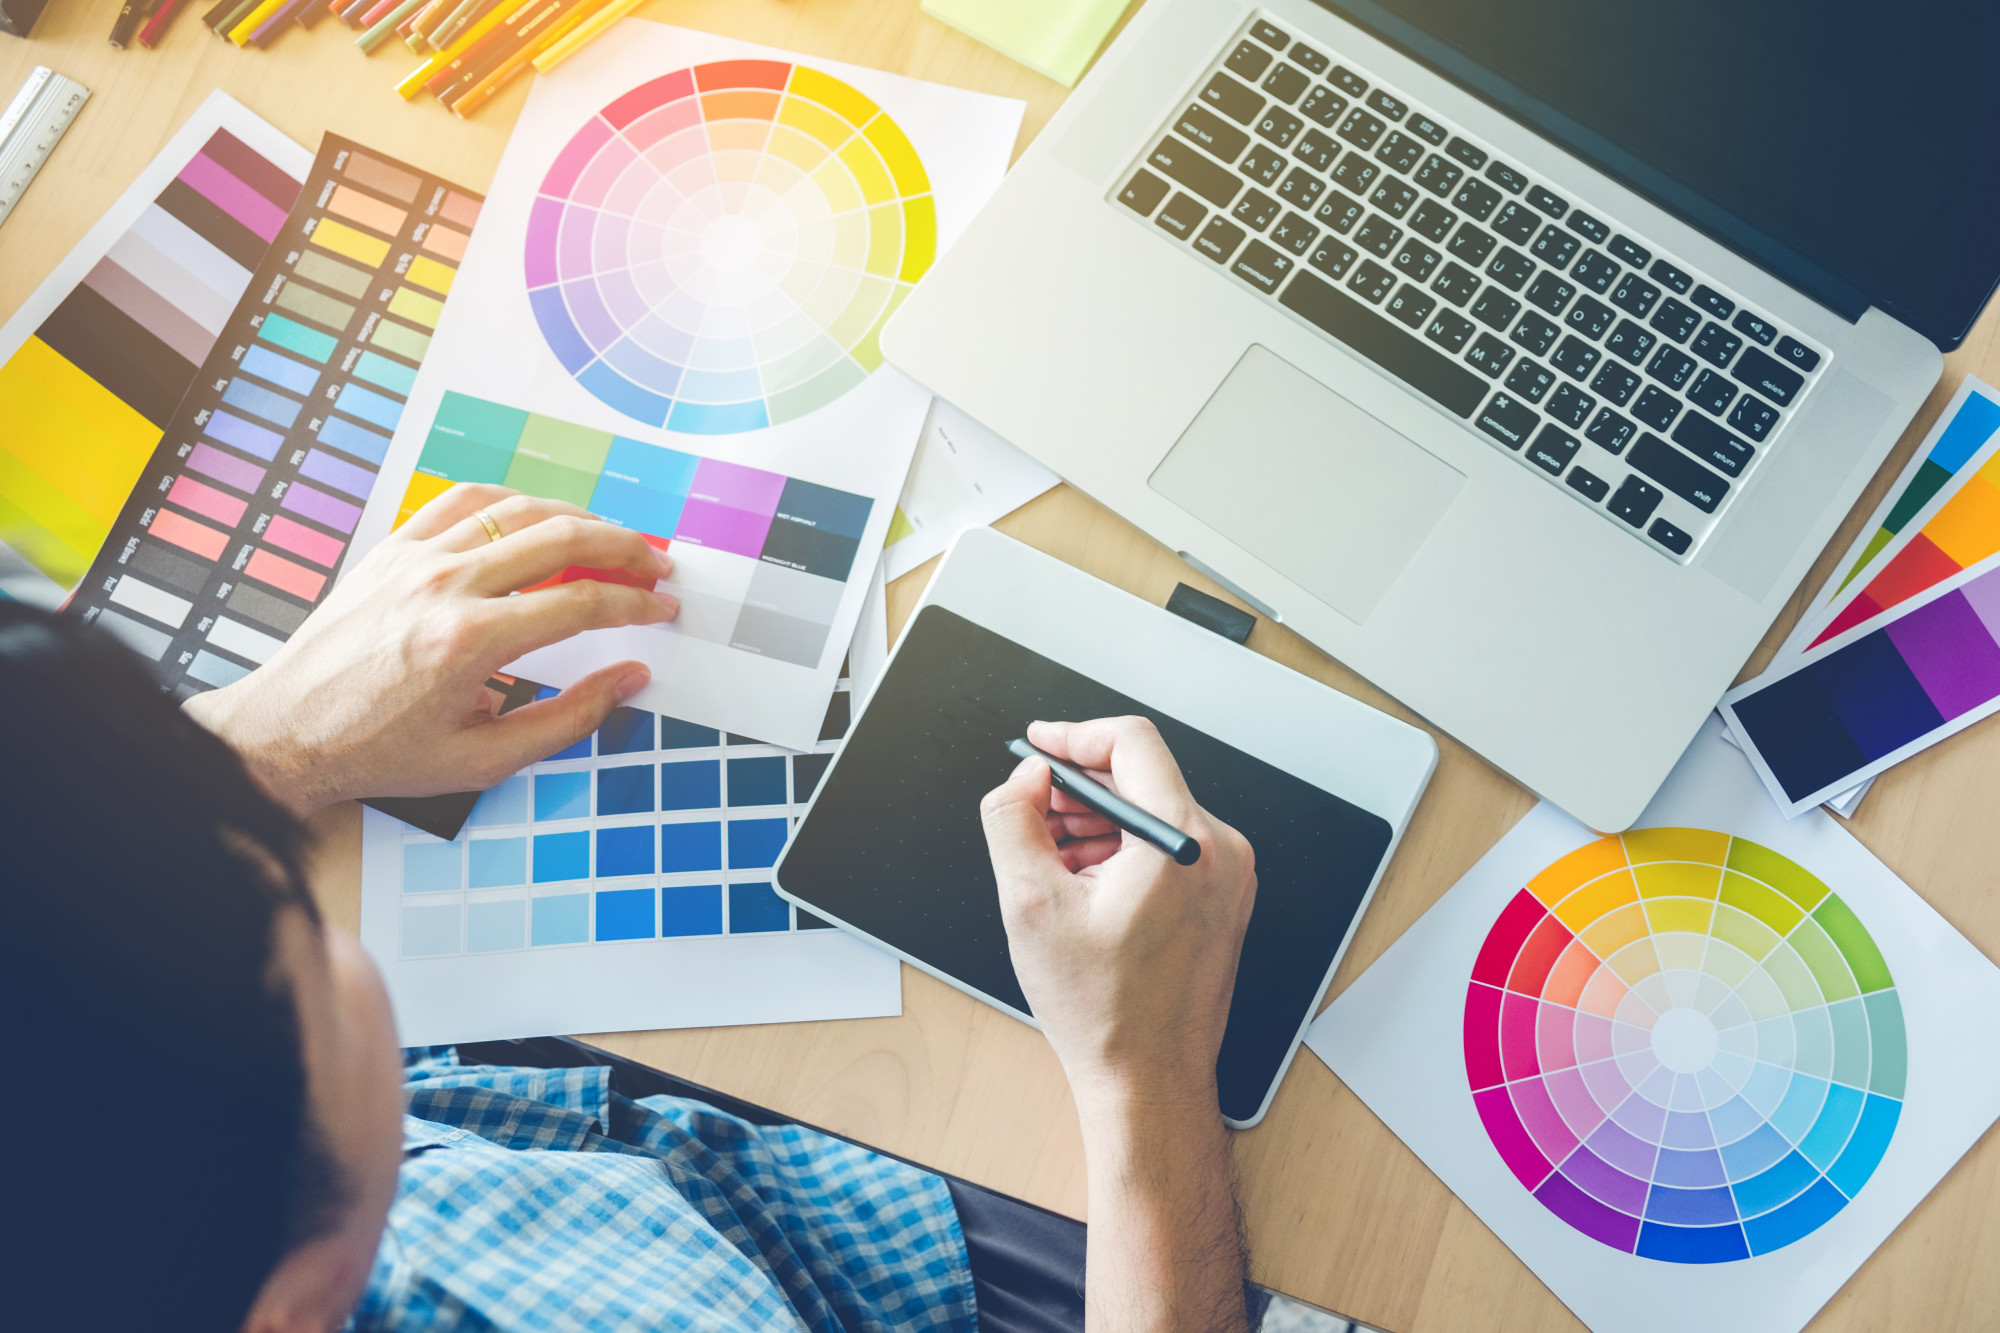 graphic designer with laptop and color wheels